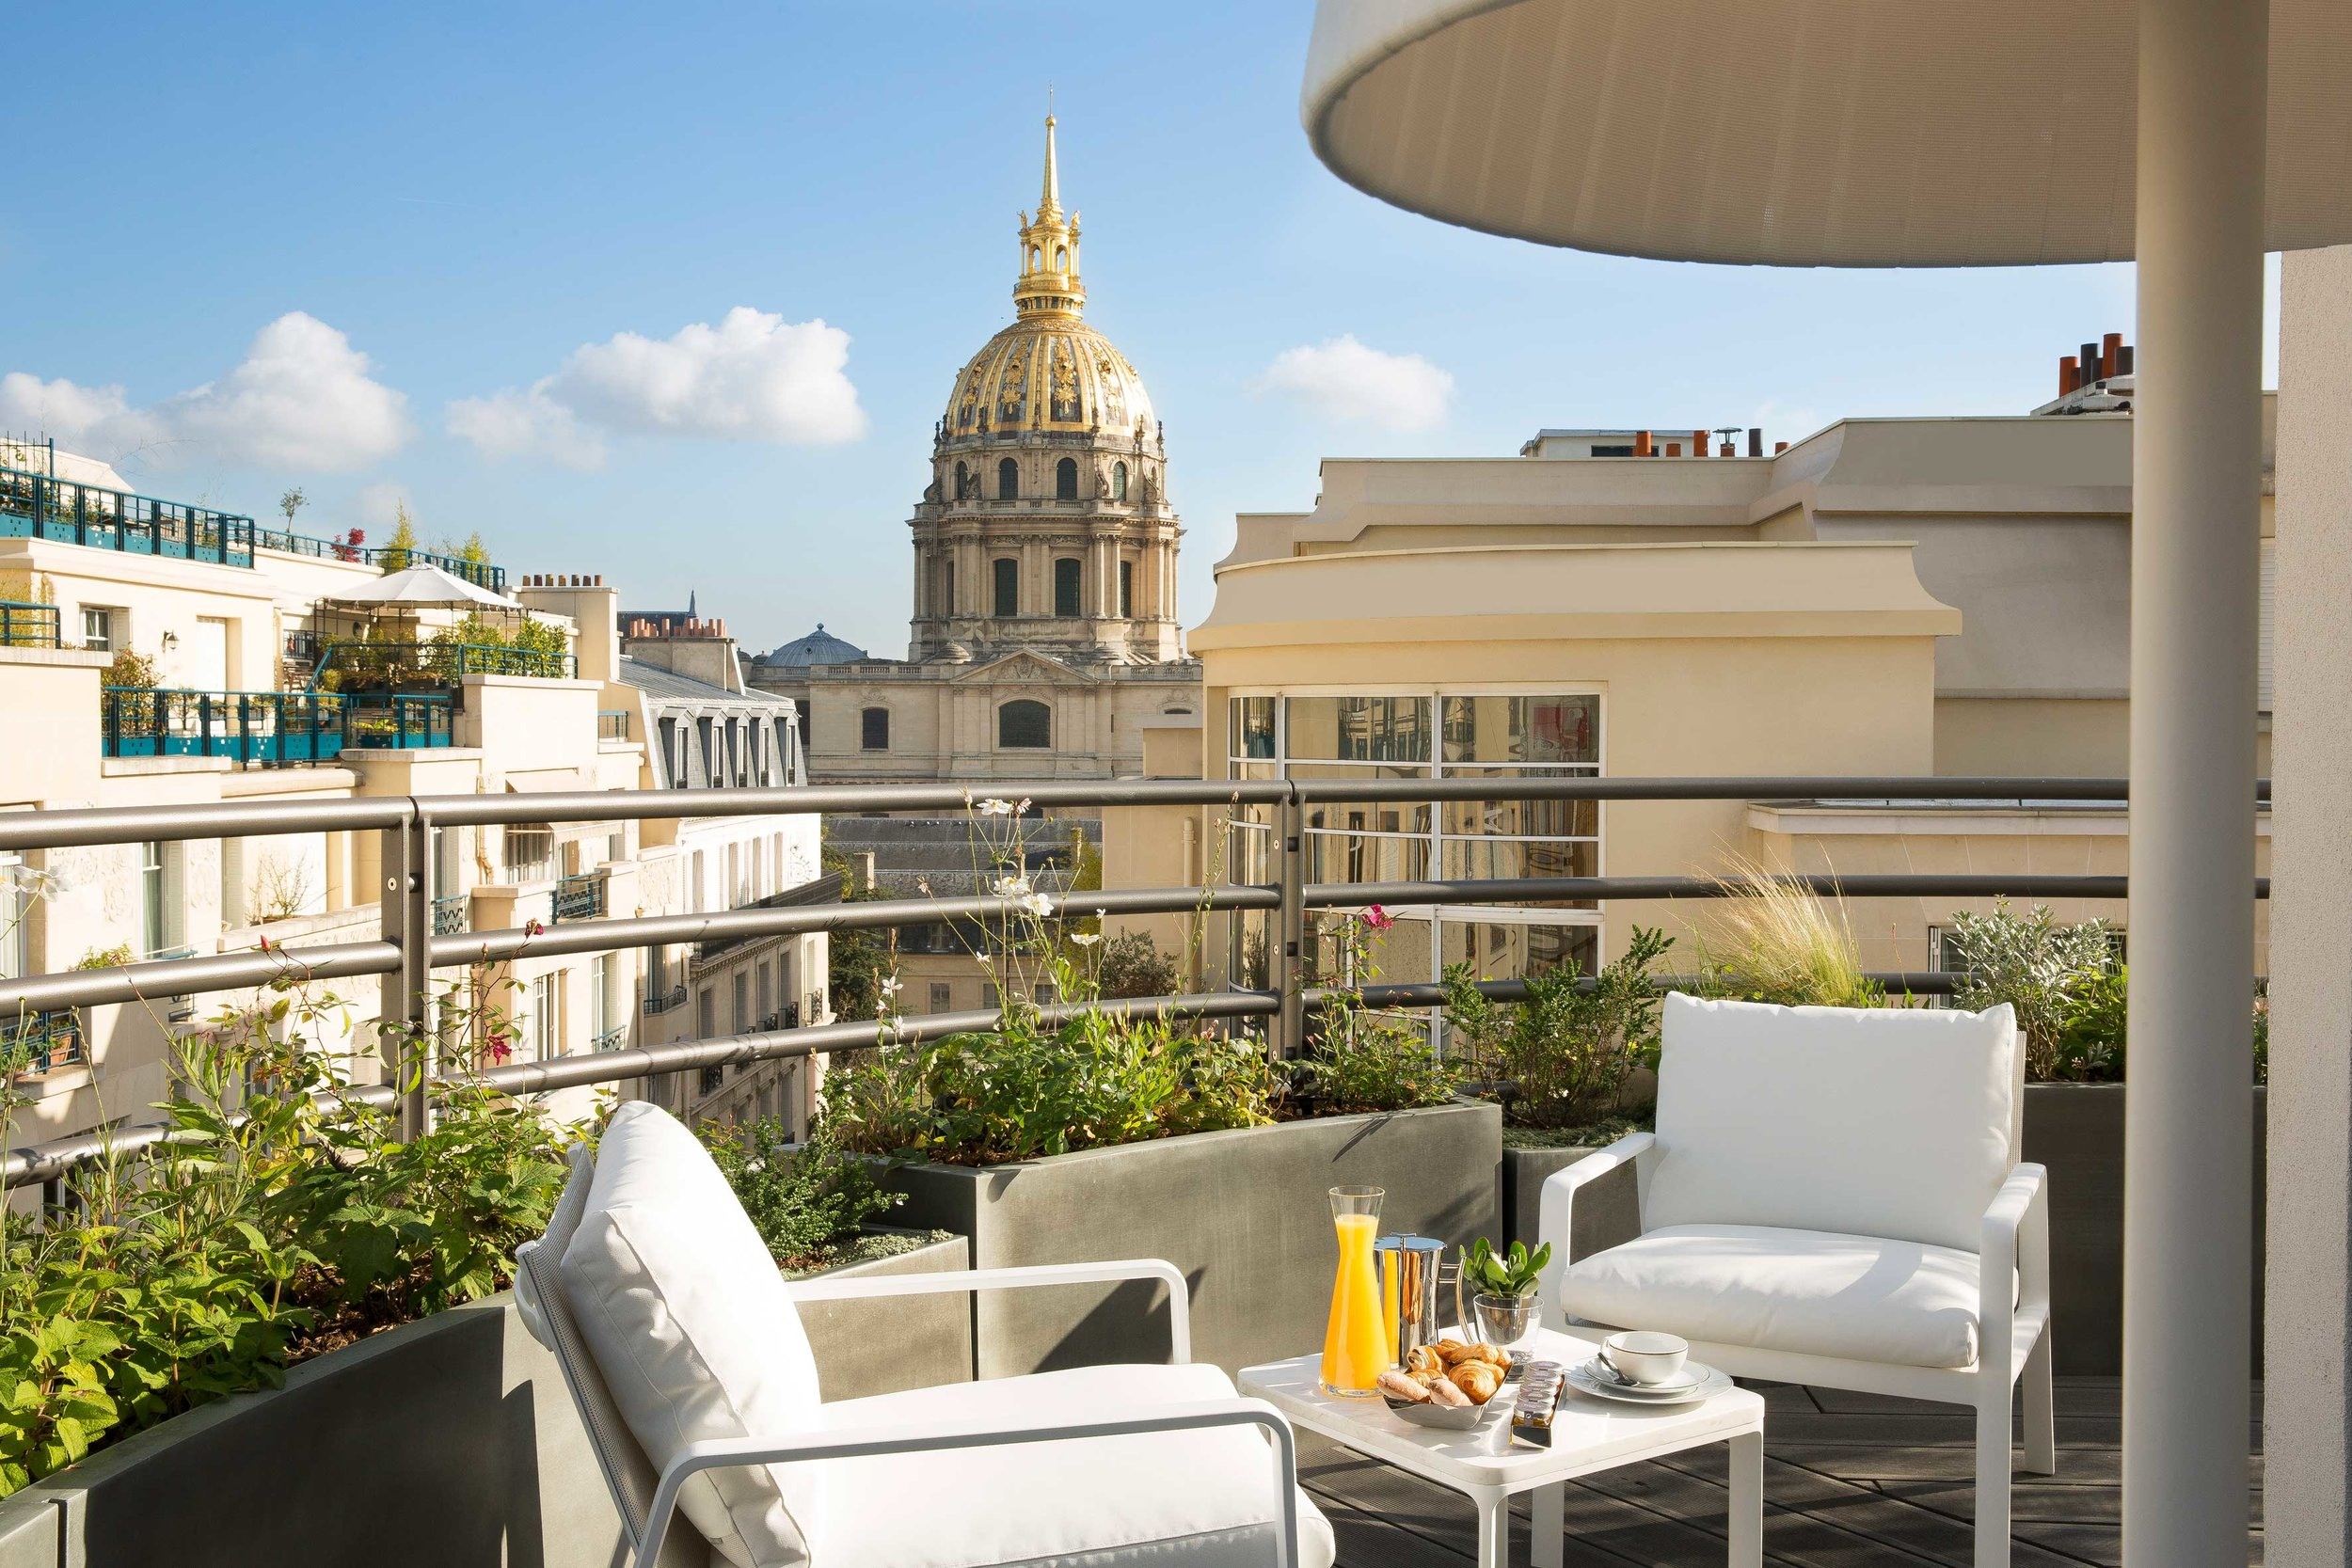 le-5-codet-suite-terrasse-402-15-md.jpg